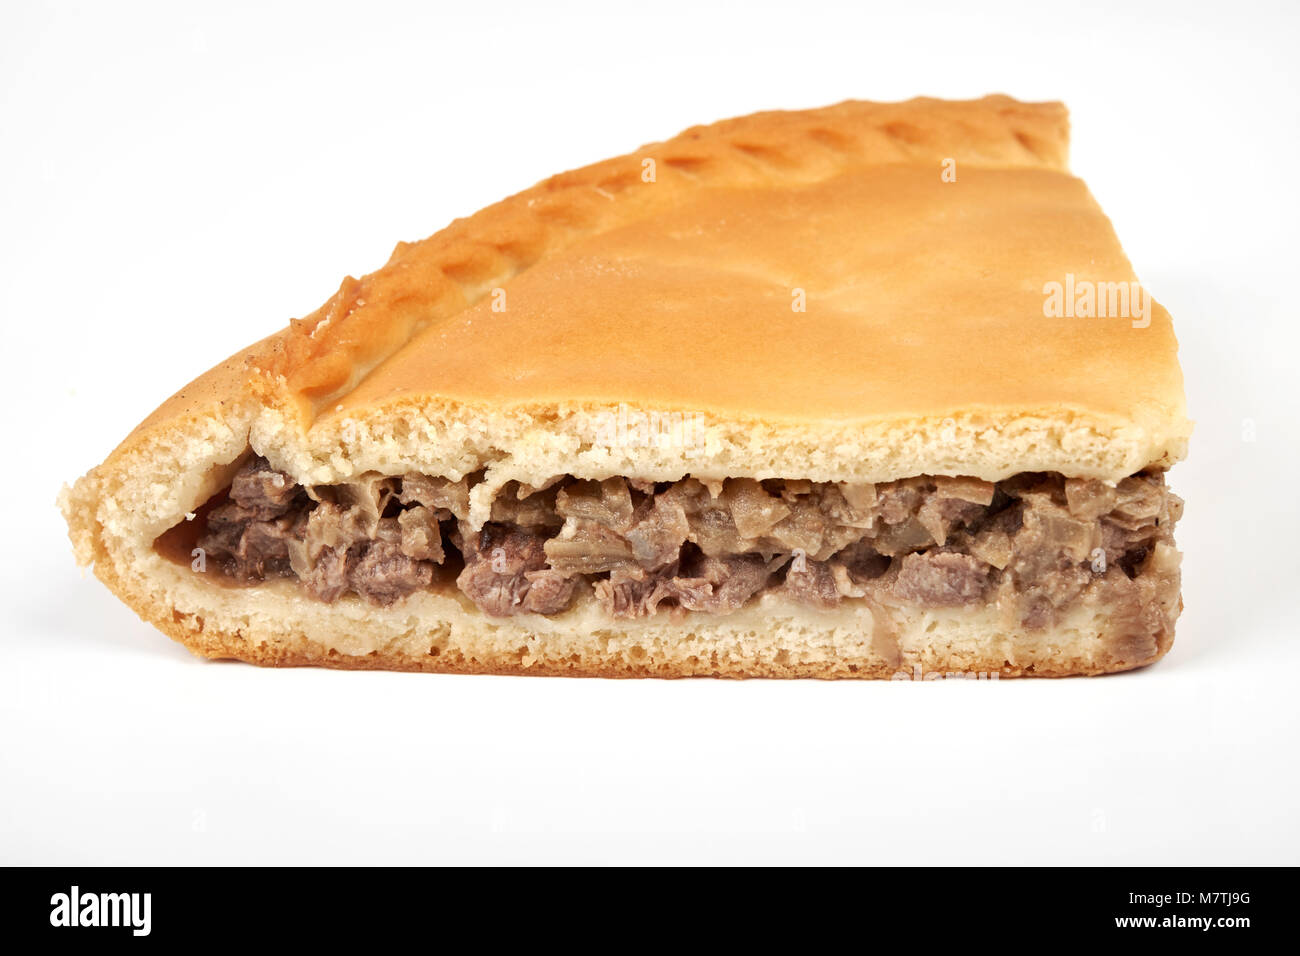 meat pie, isolated on white background - Stock Image